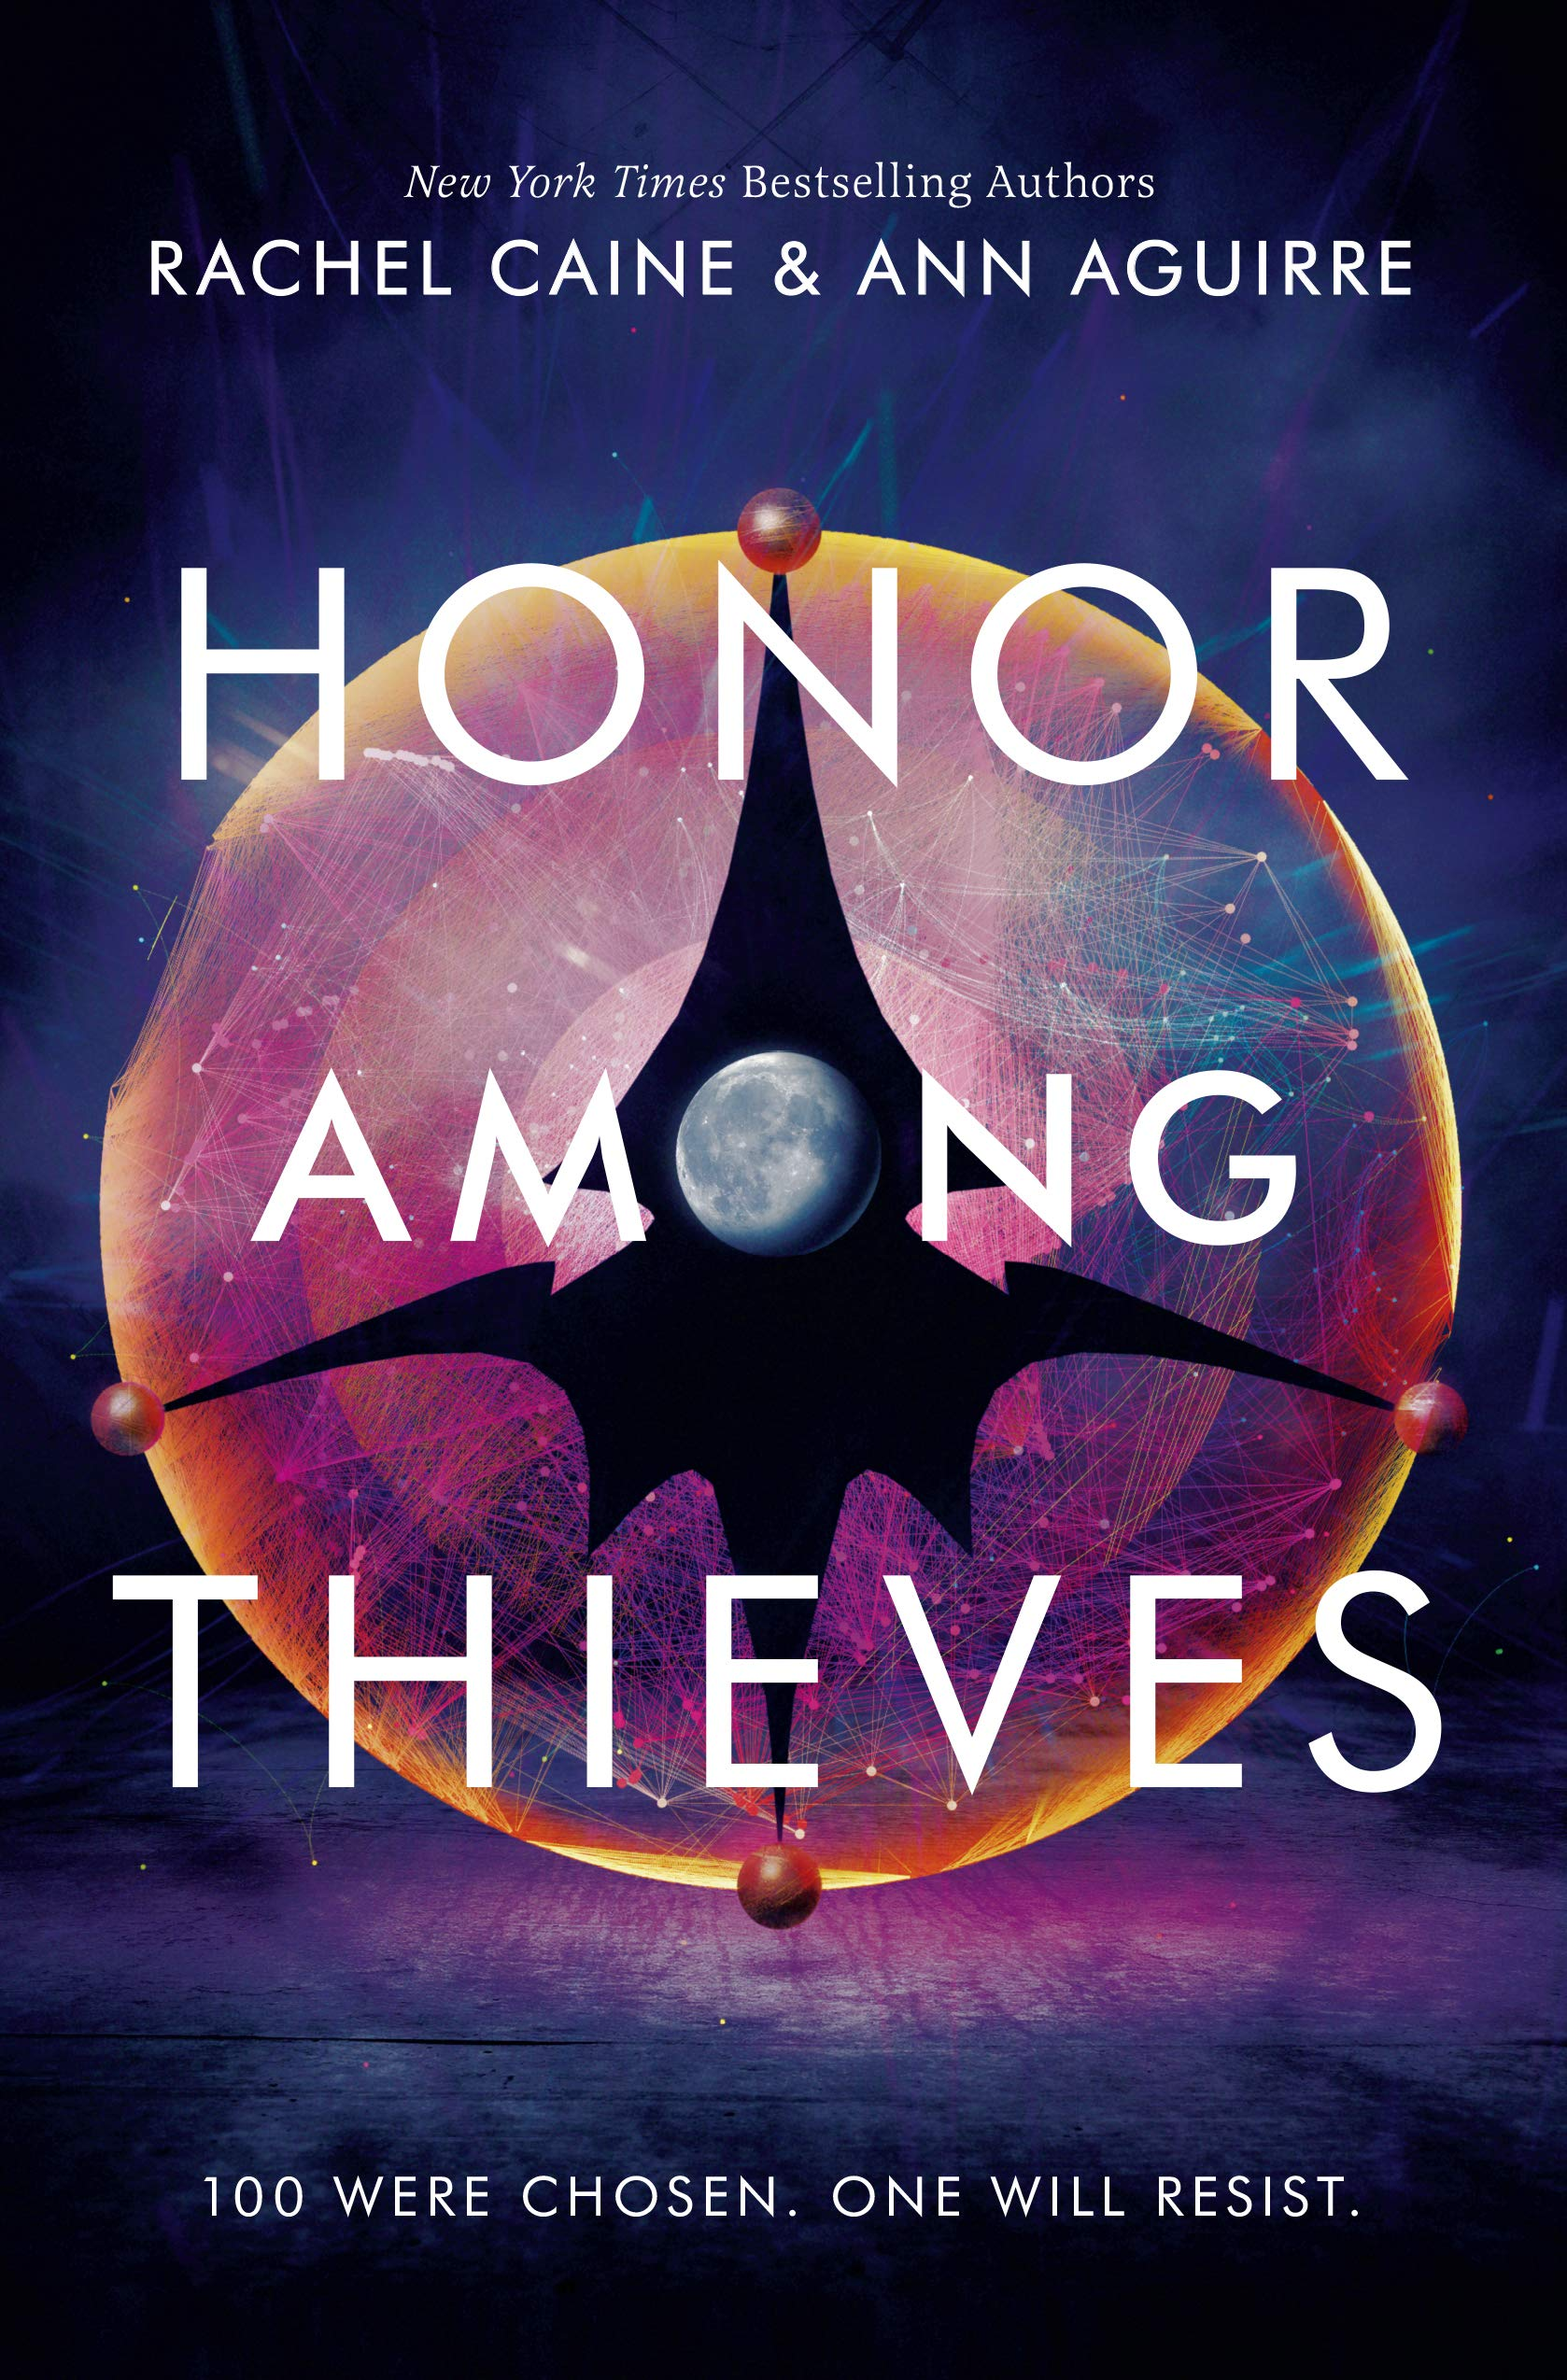 Amazon.com: Honor Among Thieves (Honors) (9780062570994): Caine ...